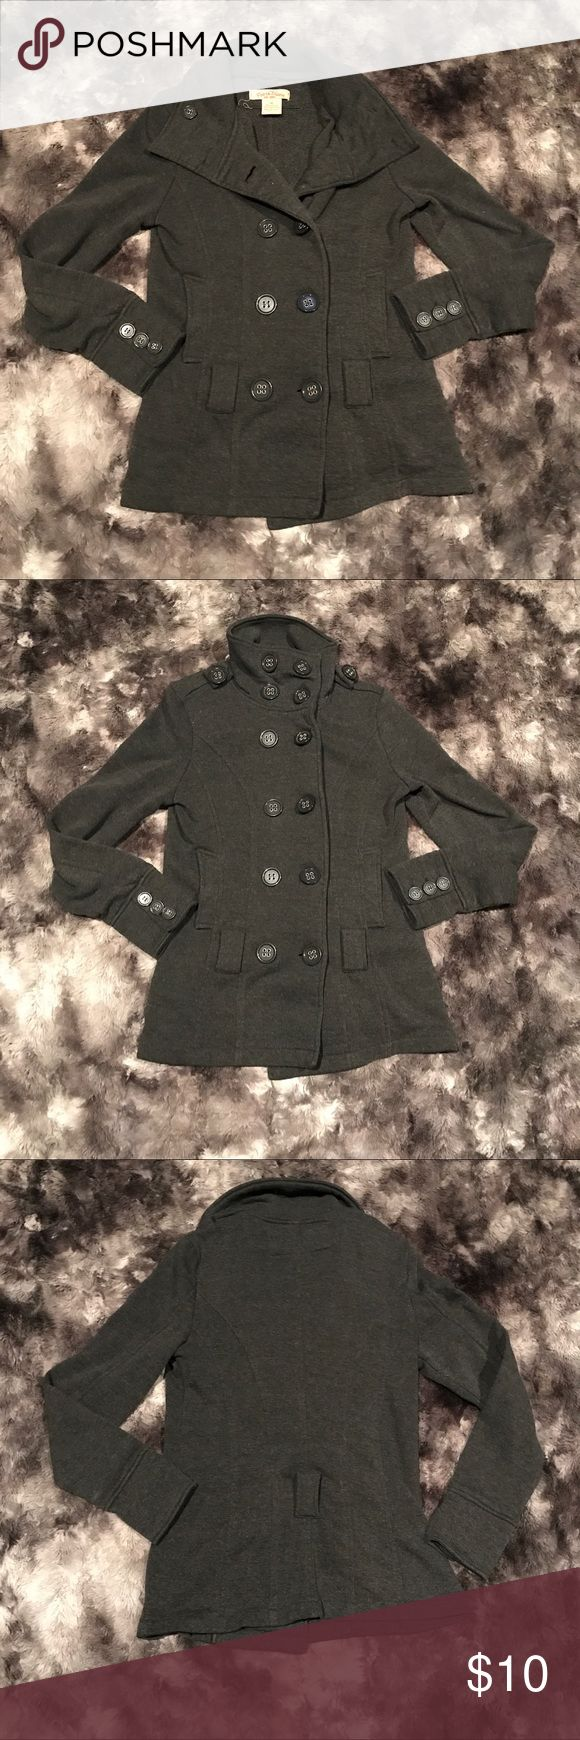 "Sz medium Paris Blues dark gray pea coat jacket Women's size medium dark gray/charcoal peacoat style jacket by Paris Blues. It can button up to the neck to look more military style. In excellent condition, just missing the tie for the waist but looks great without that! Perfect for fall and winter! Length-26"" armpit to armpit-18"" Paris Blues Jackets & Coats Pea Coats"